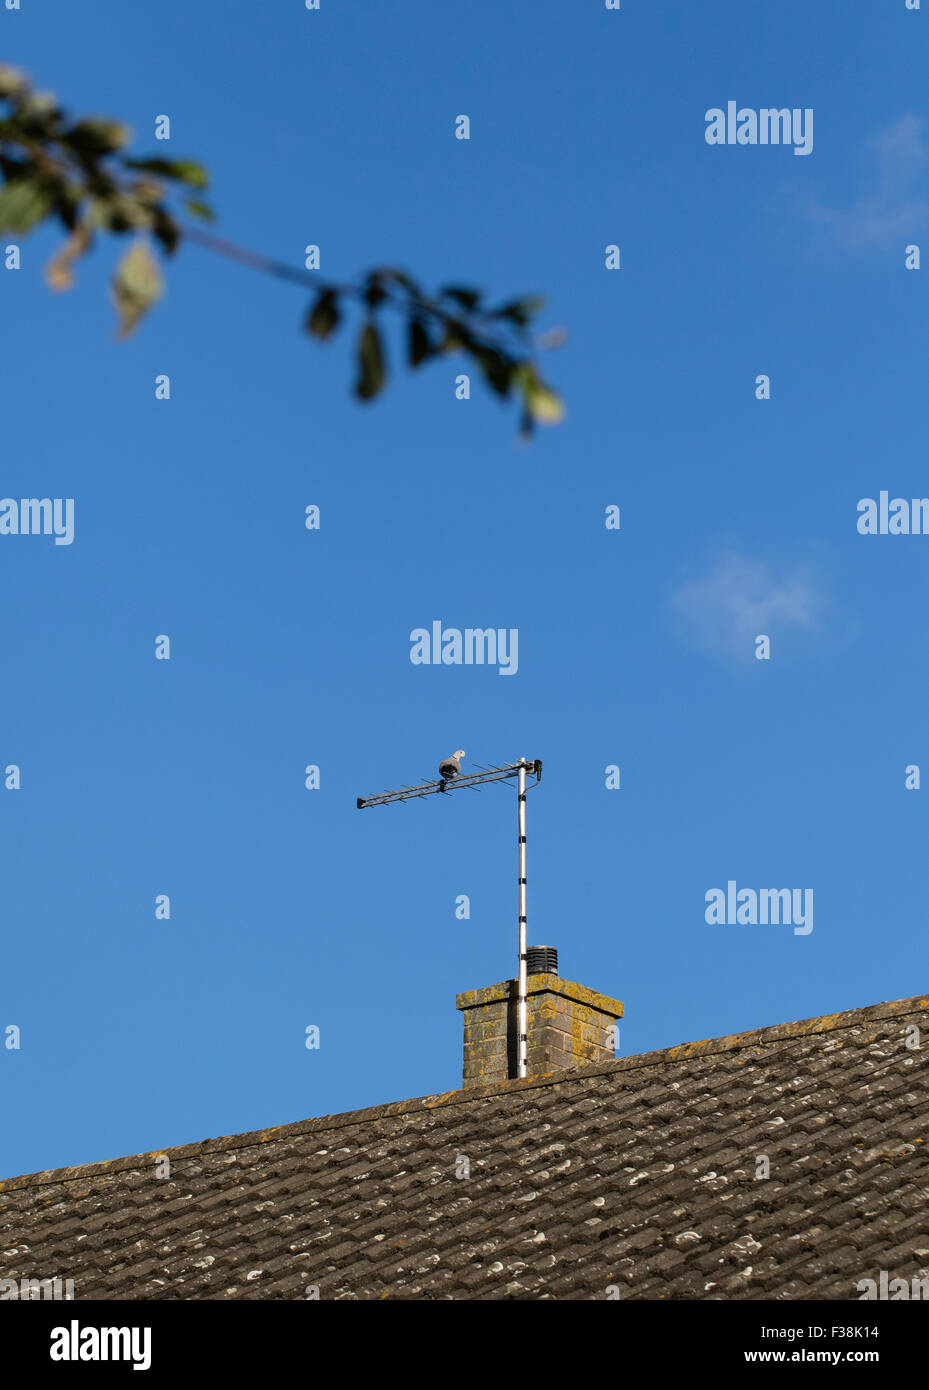 Suburban house rooftop showing TV aerial attached to the chimney stack - Stock Image